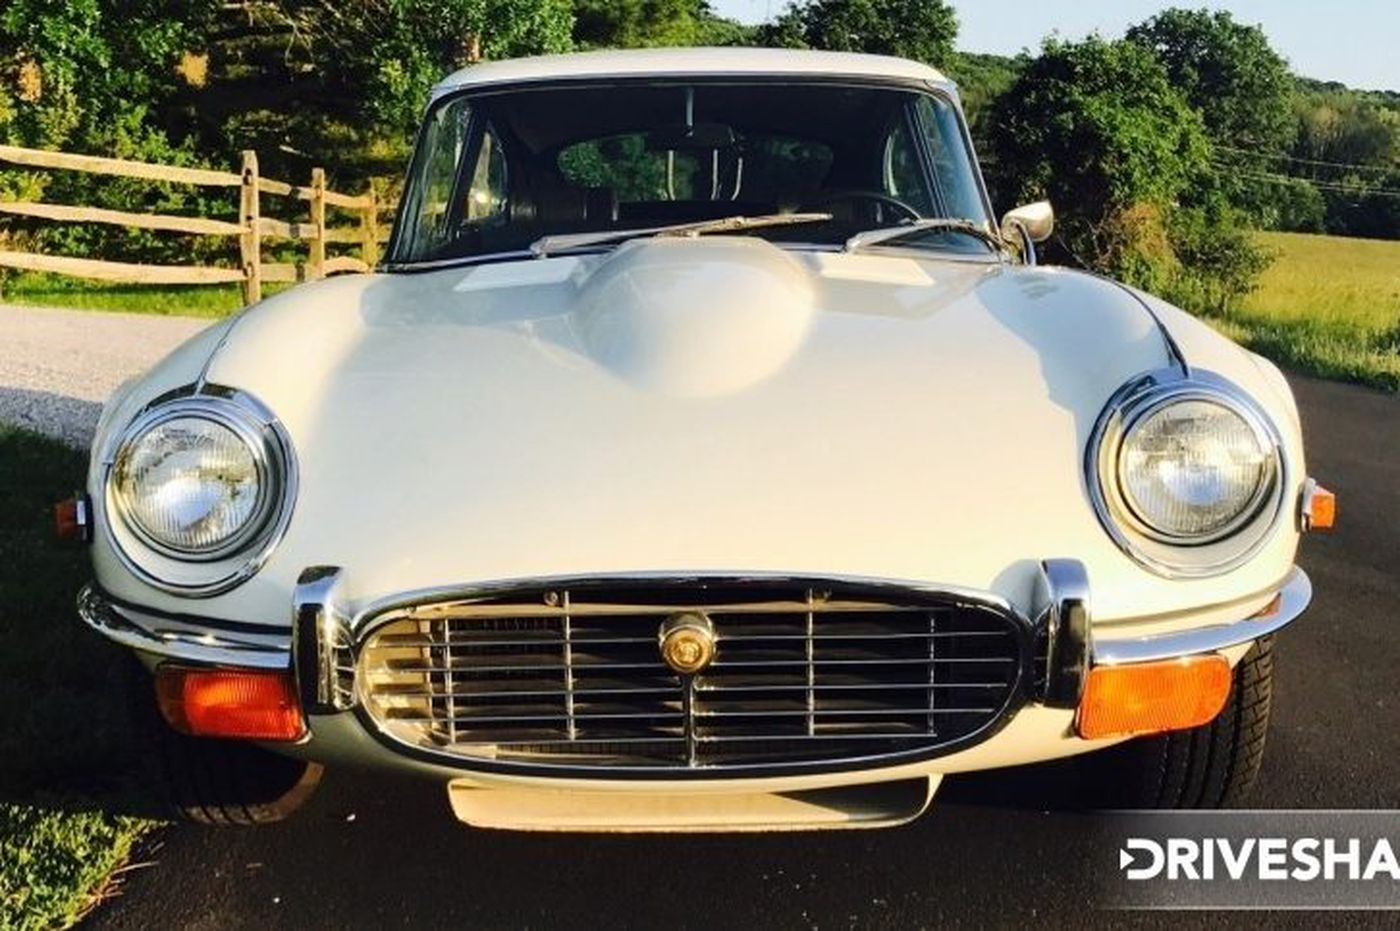 For lovers of vintage cars, DriveShare is the new place to rent (or rent out) your ride